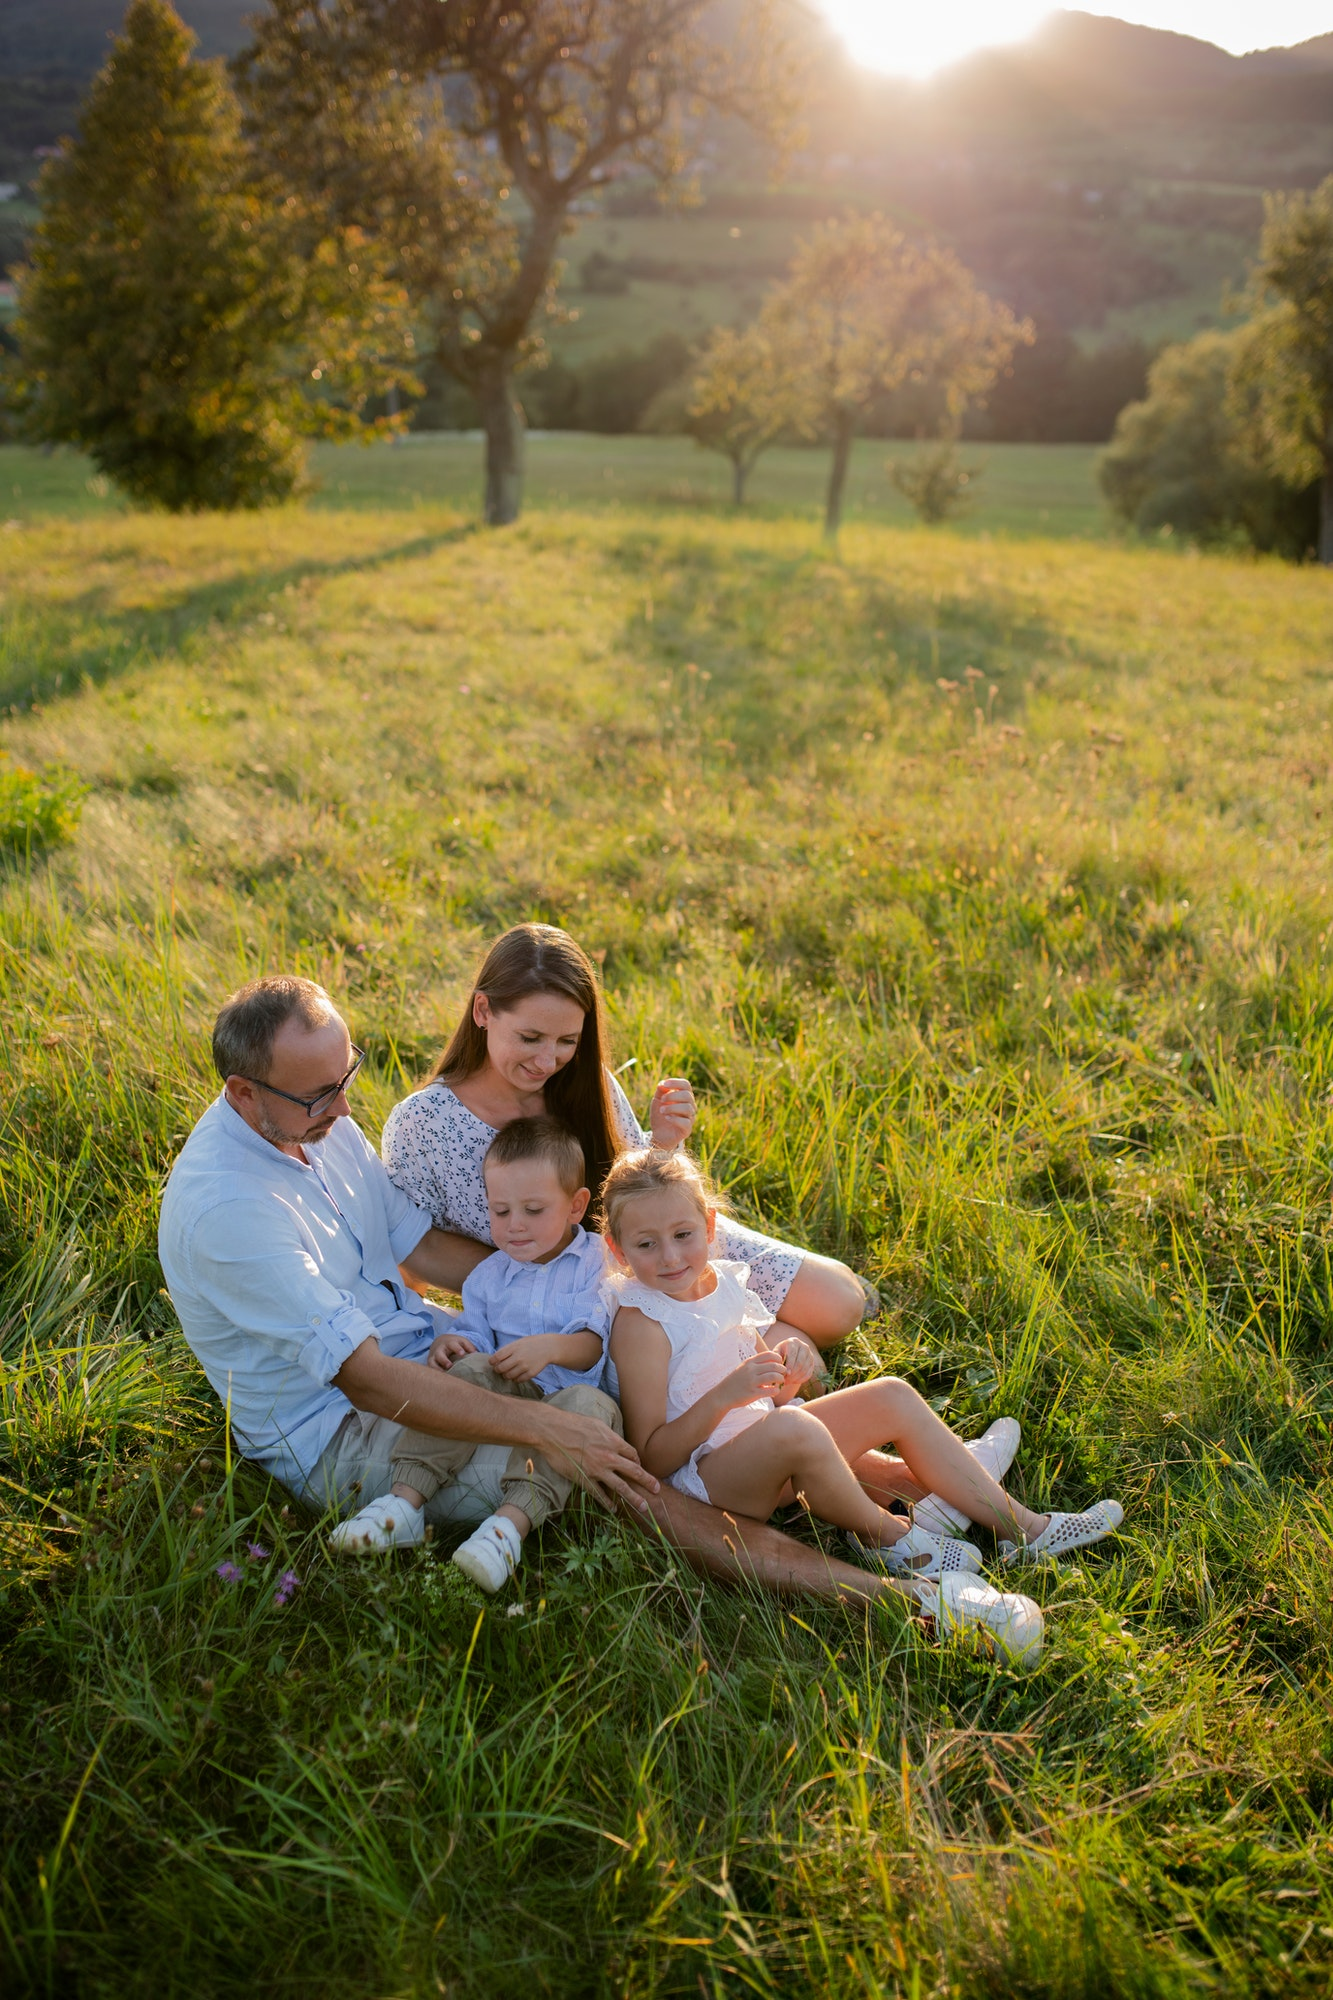 Young family with two small children sitting on meadow outdoors at sunset